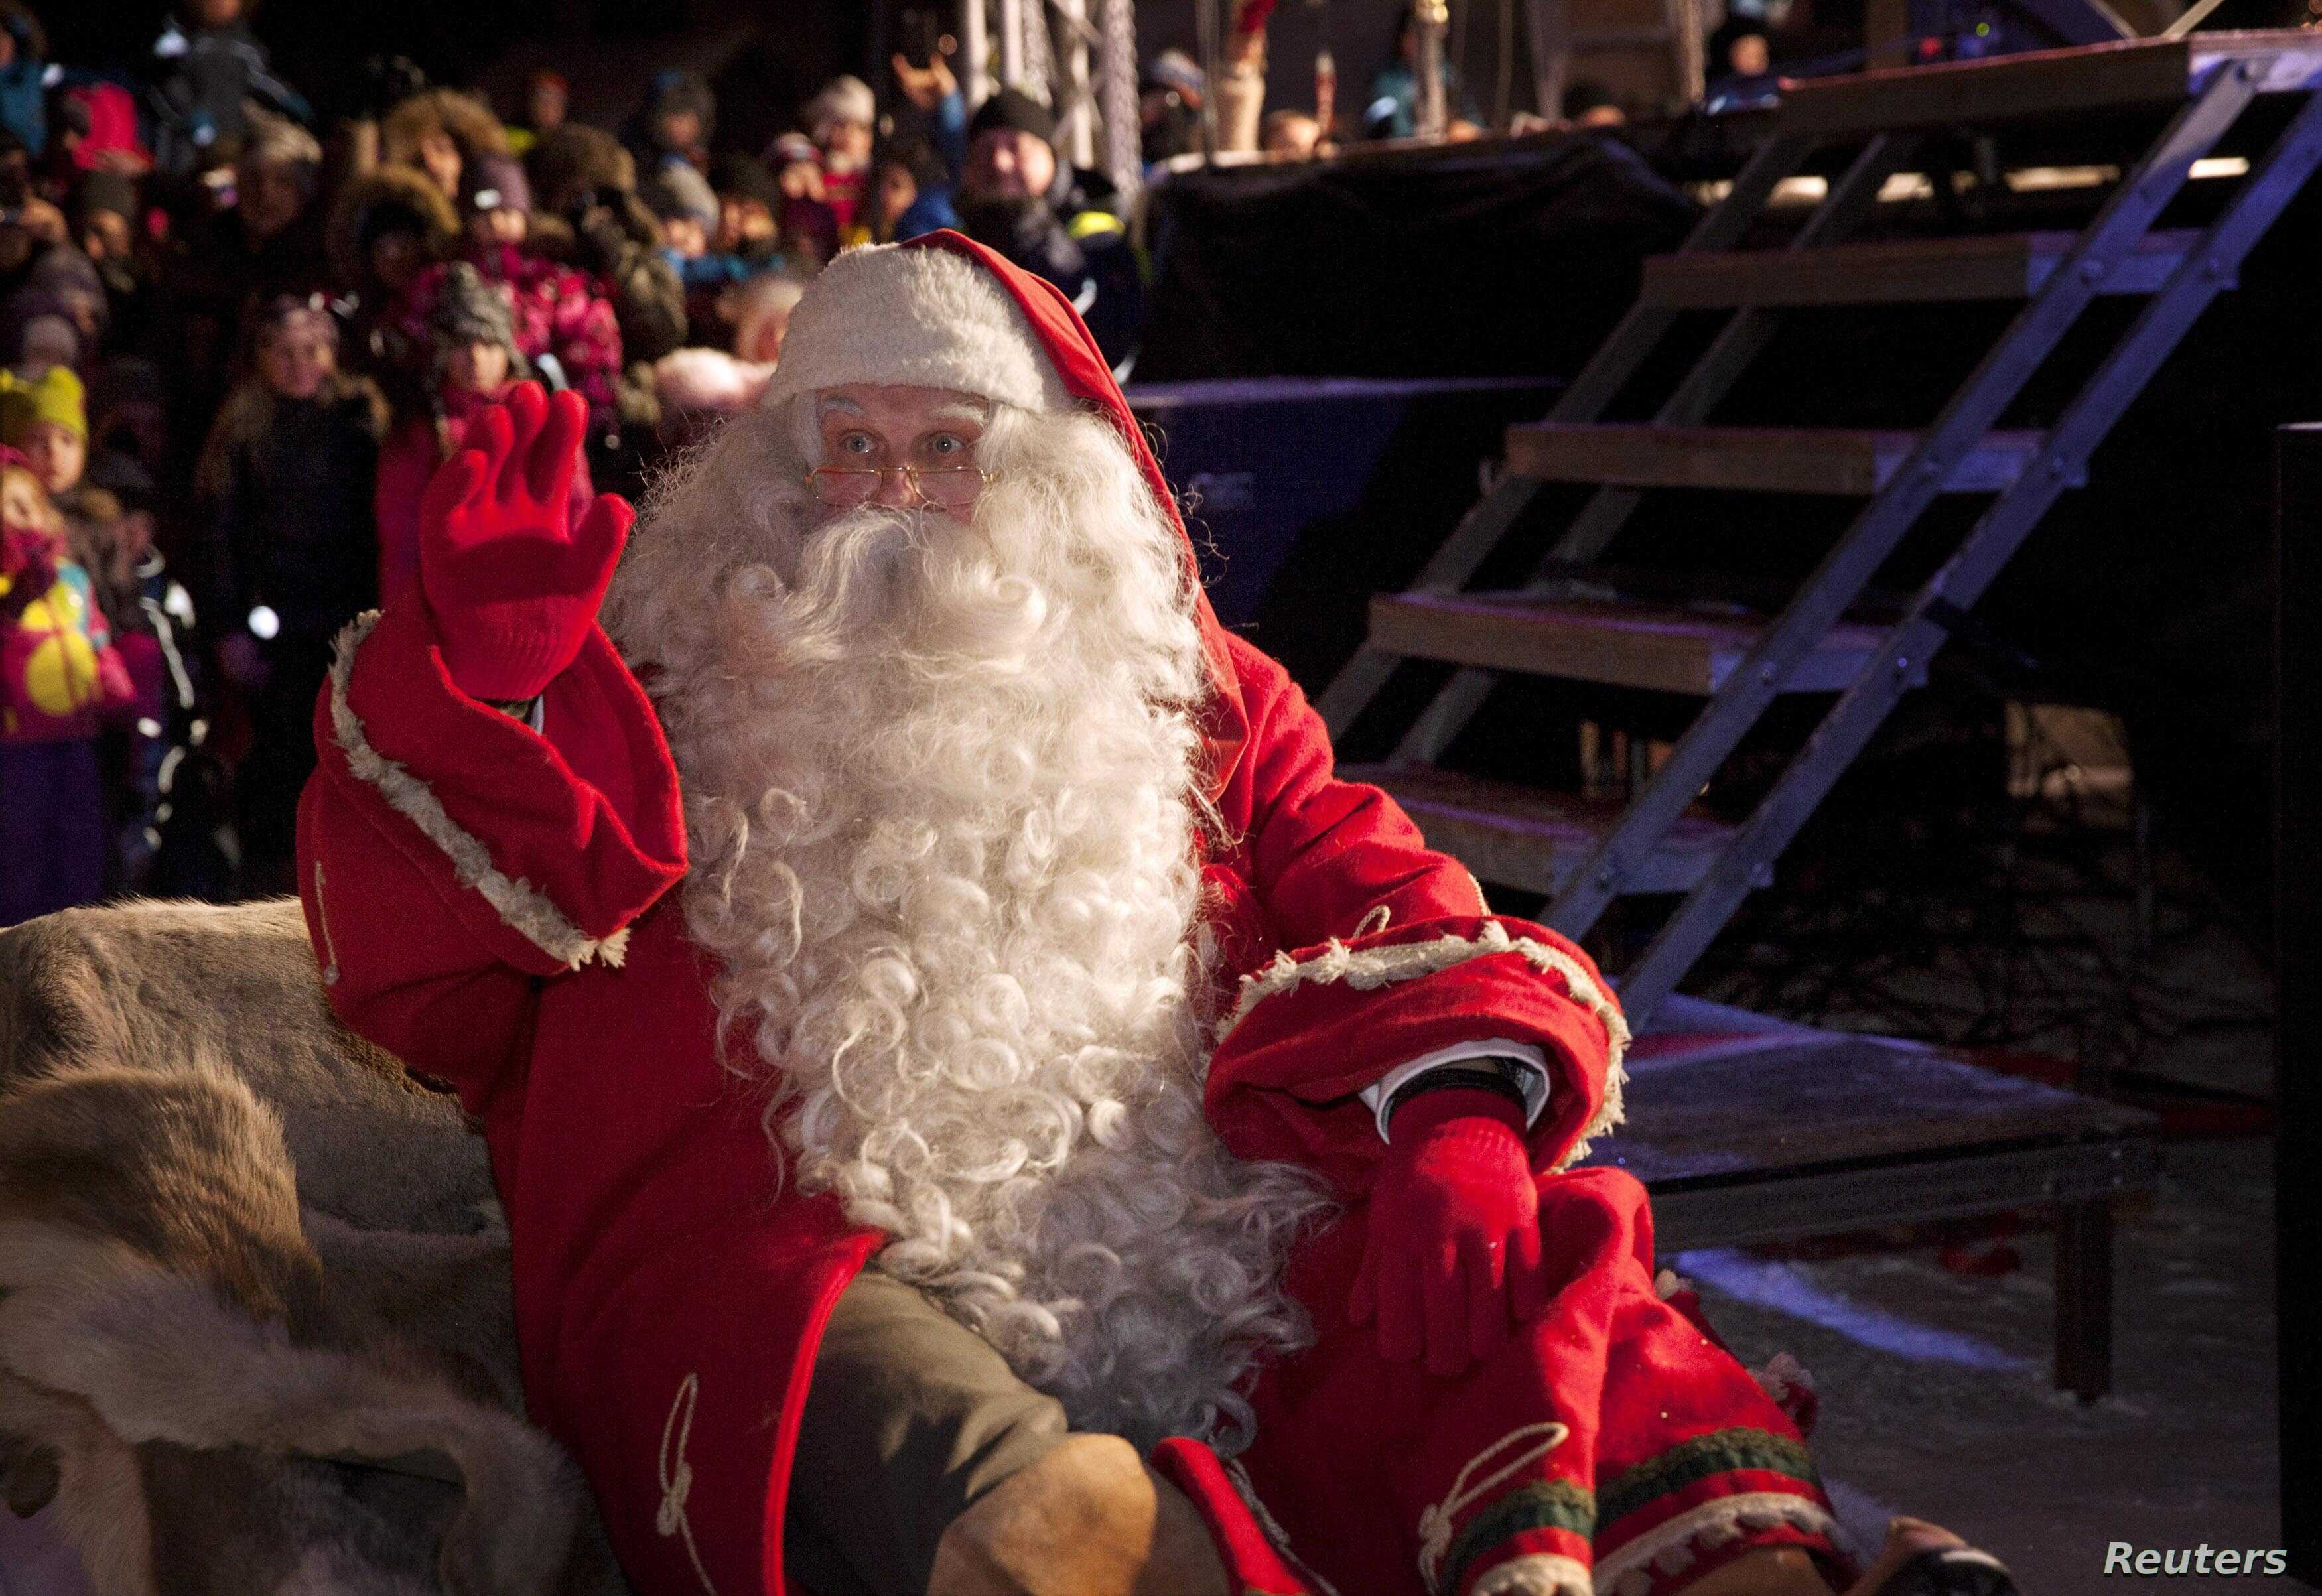 A man dressed as Santa Claus leaves for his annual Christmas journey from the Santa Claus Village at the Arctic Circle in Rovaniemi, Finnish Lapland, Dec. 23, 2014.